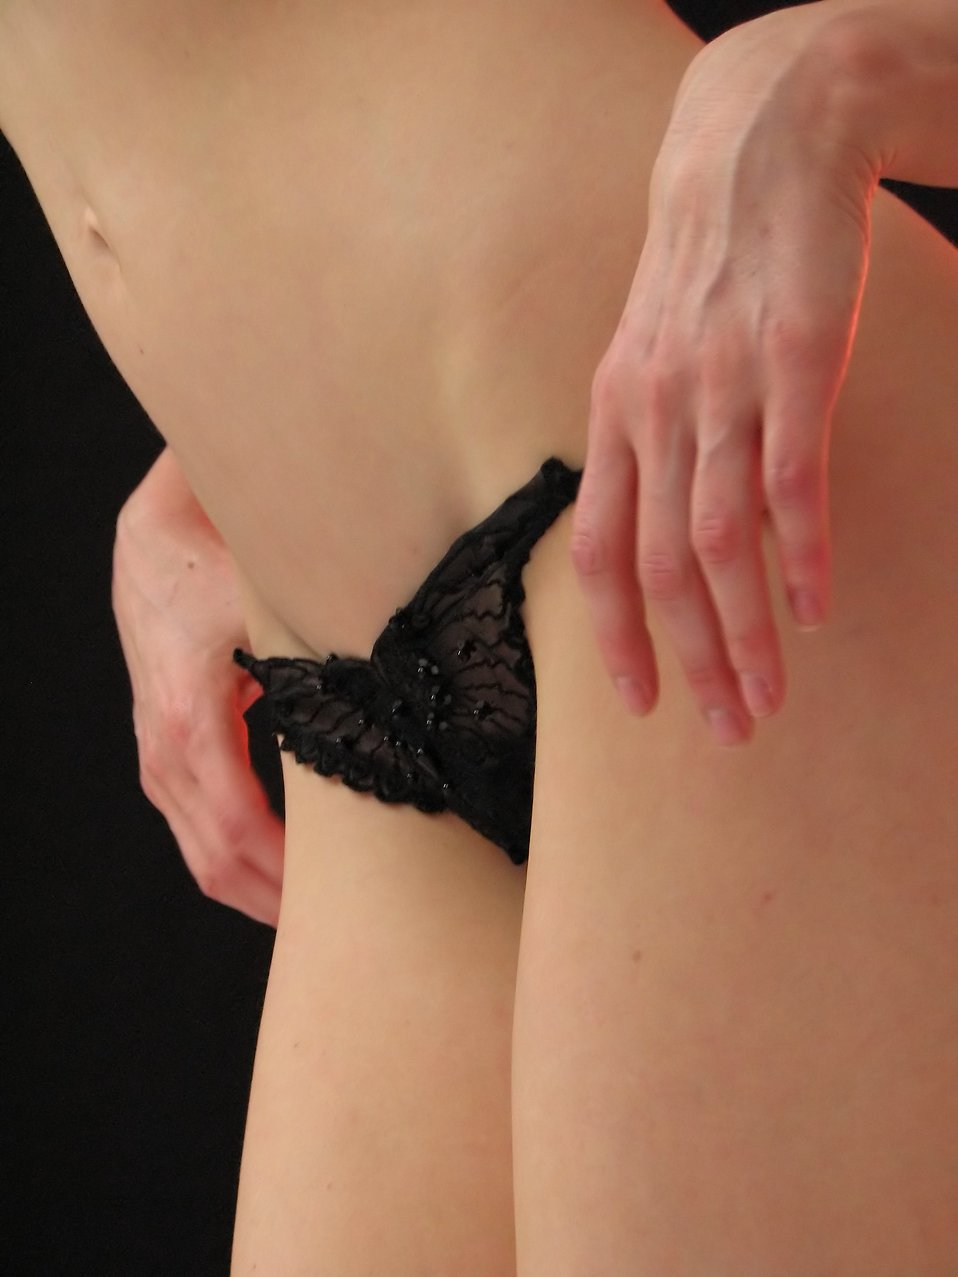 Closeup of a woman's body wearing black lingerie : Free Stock Photo